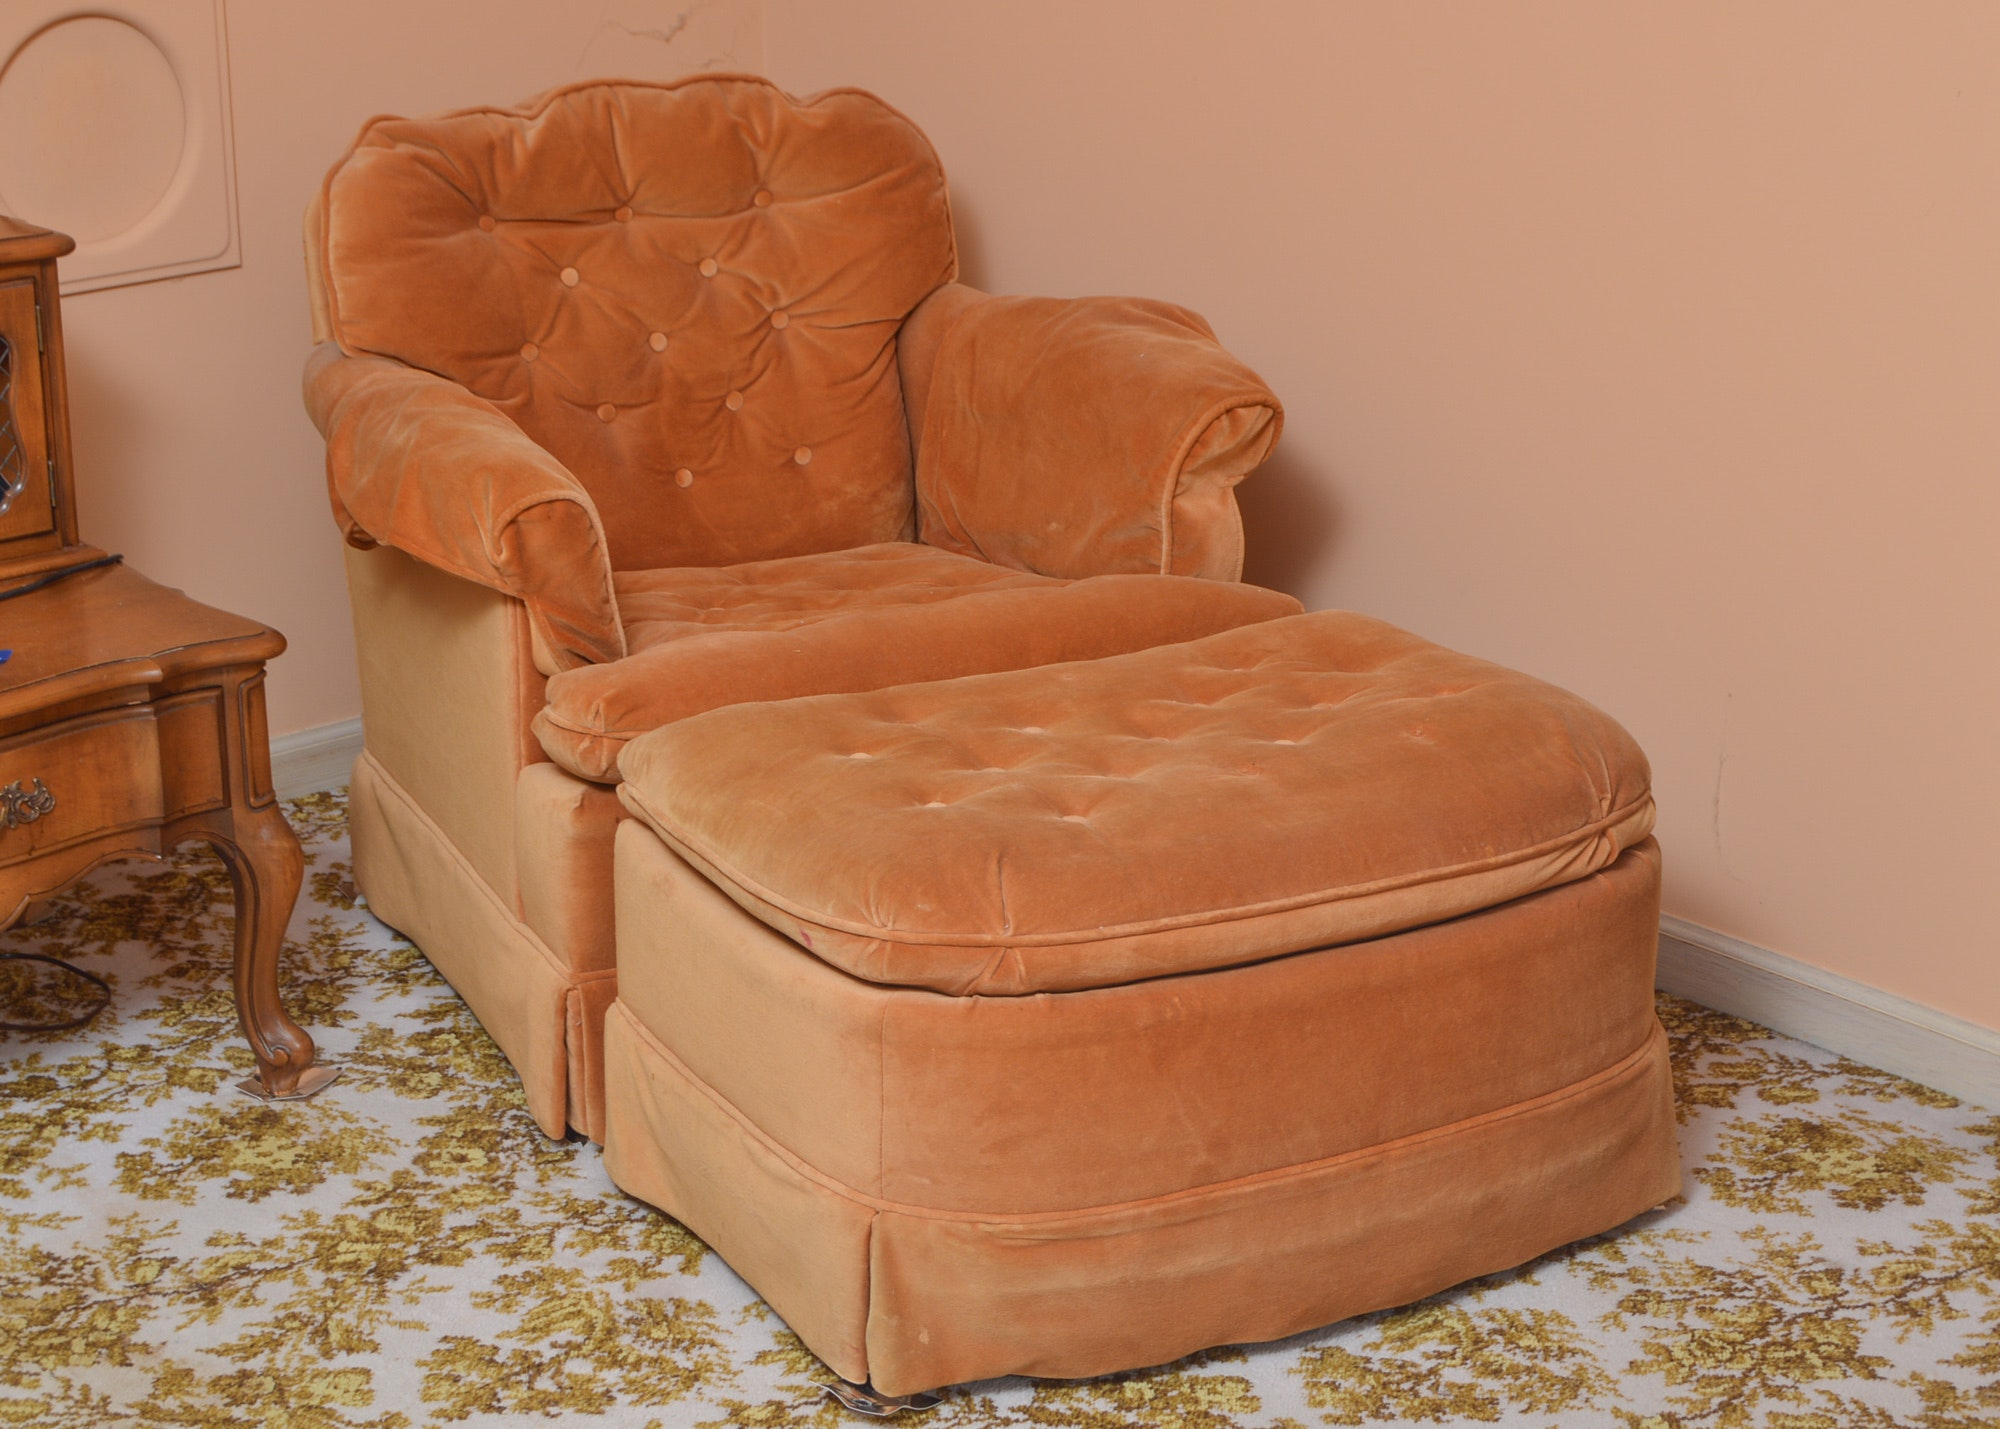 Overstuffed Armchair with Footstool by Marshall Fields